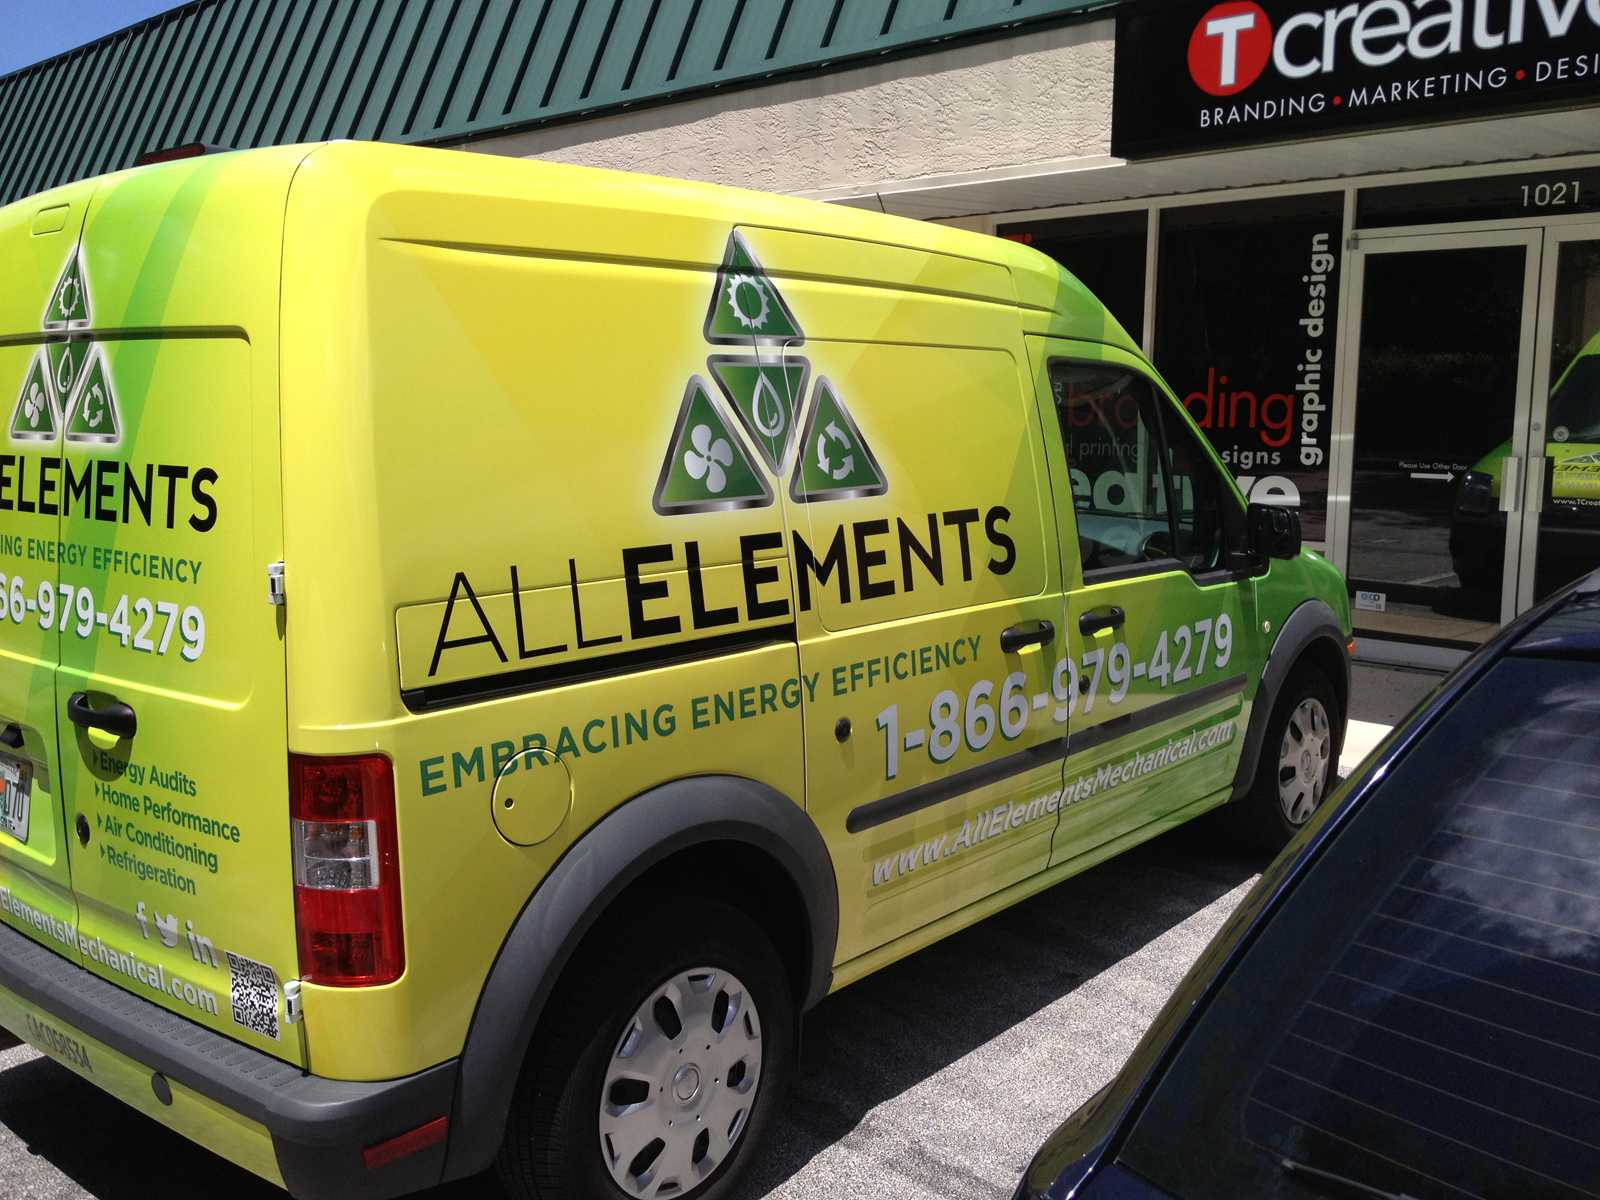 All Elements Van Wrap